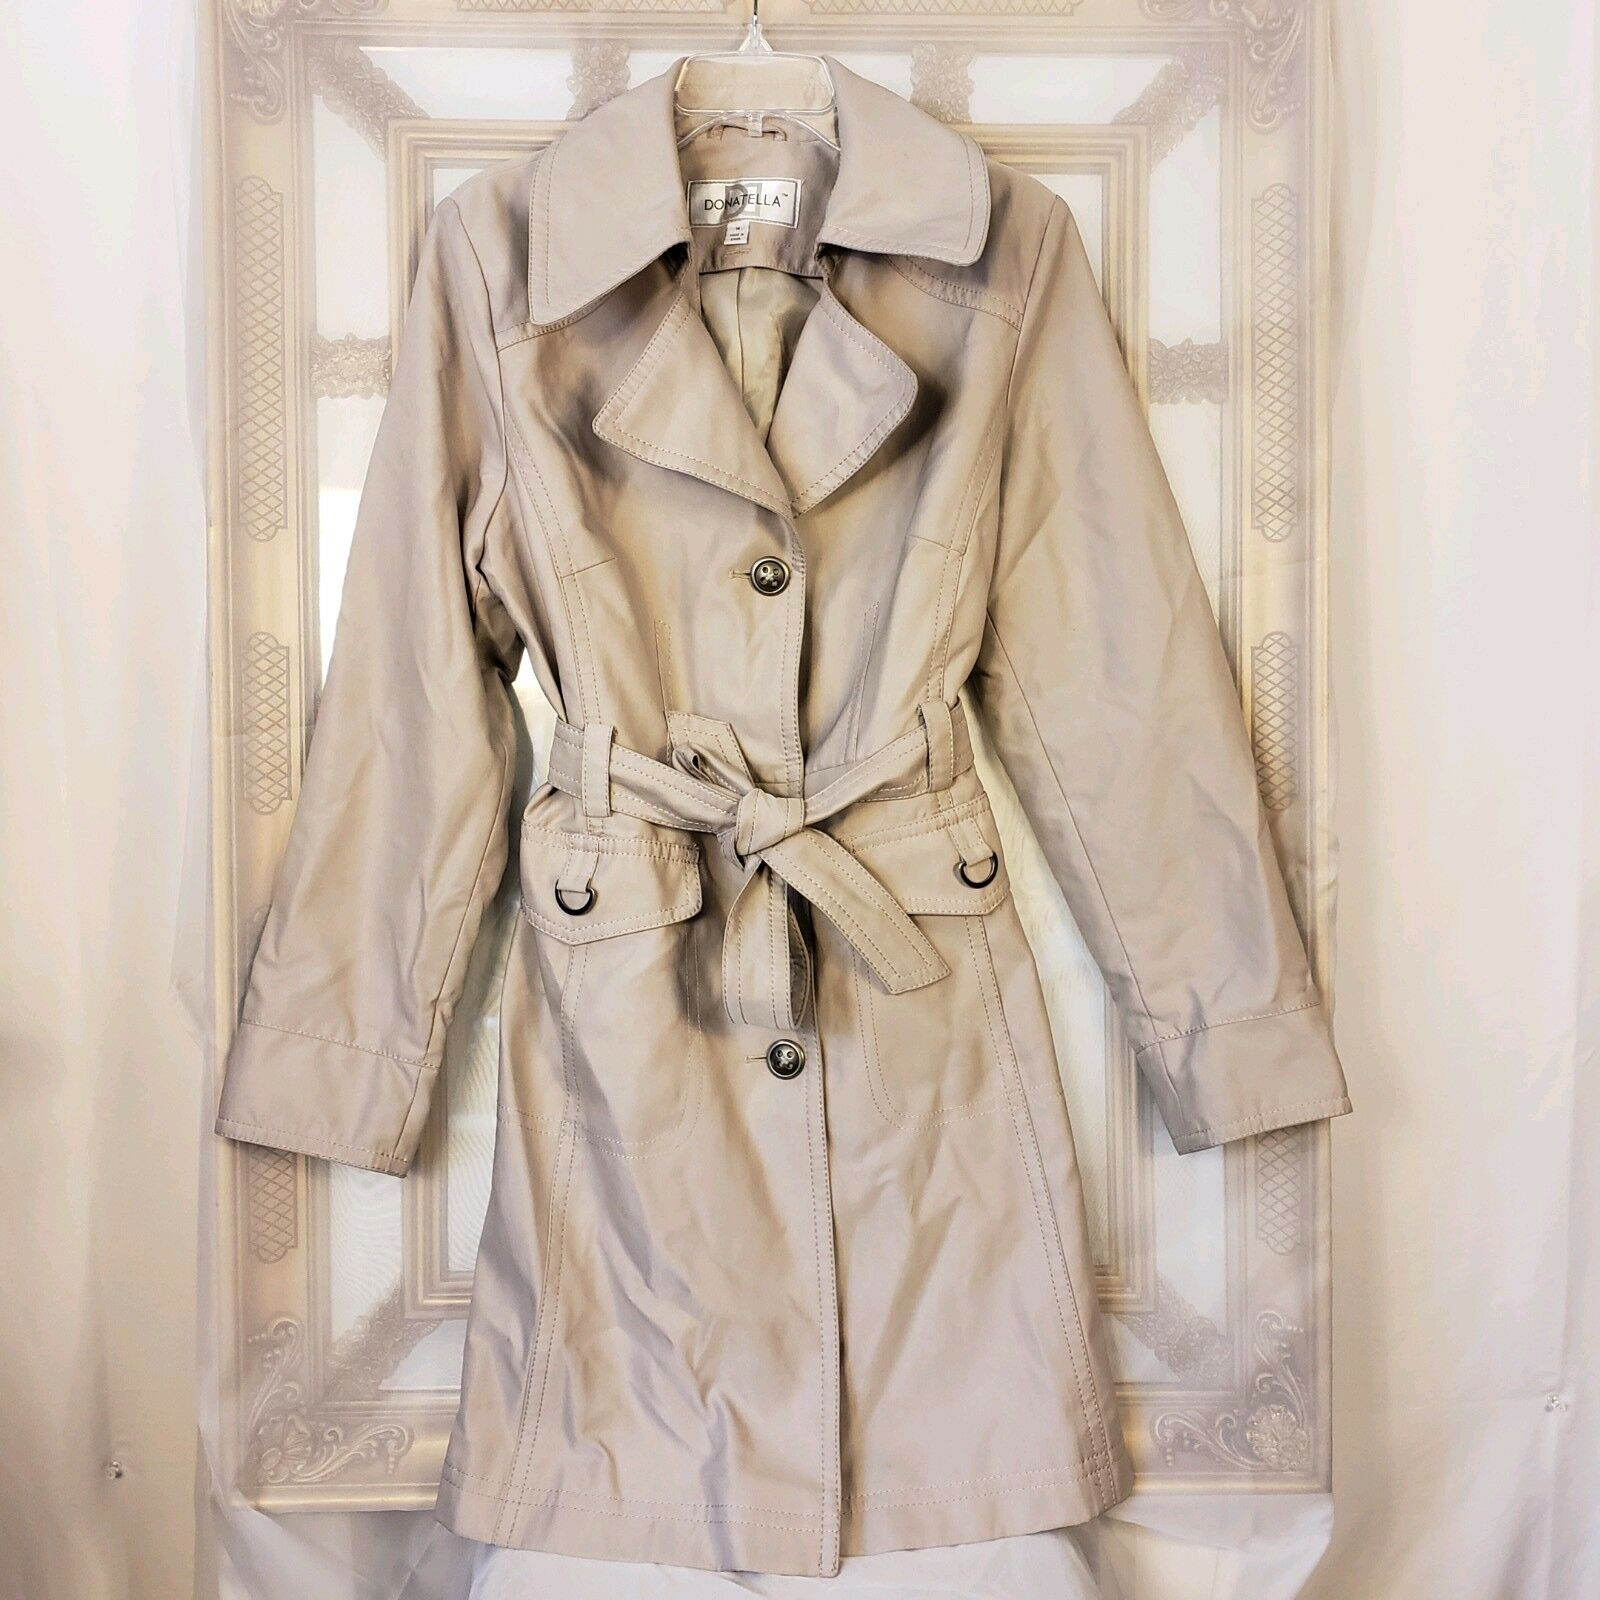 Donatella Versace Women's Sz 14 Single Breasted Trench Coat Belted Beige Classic